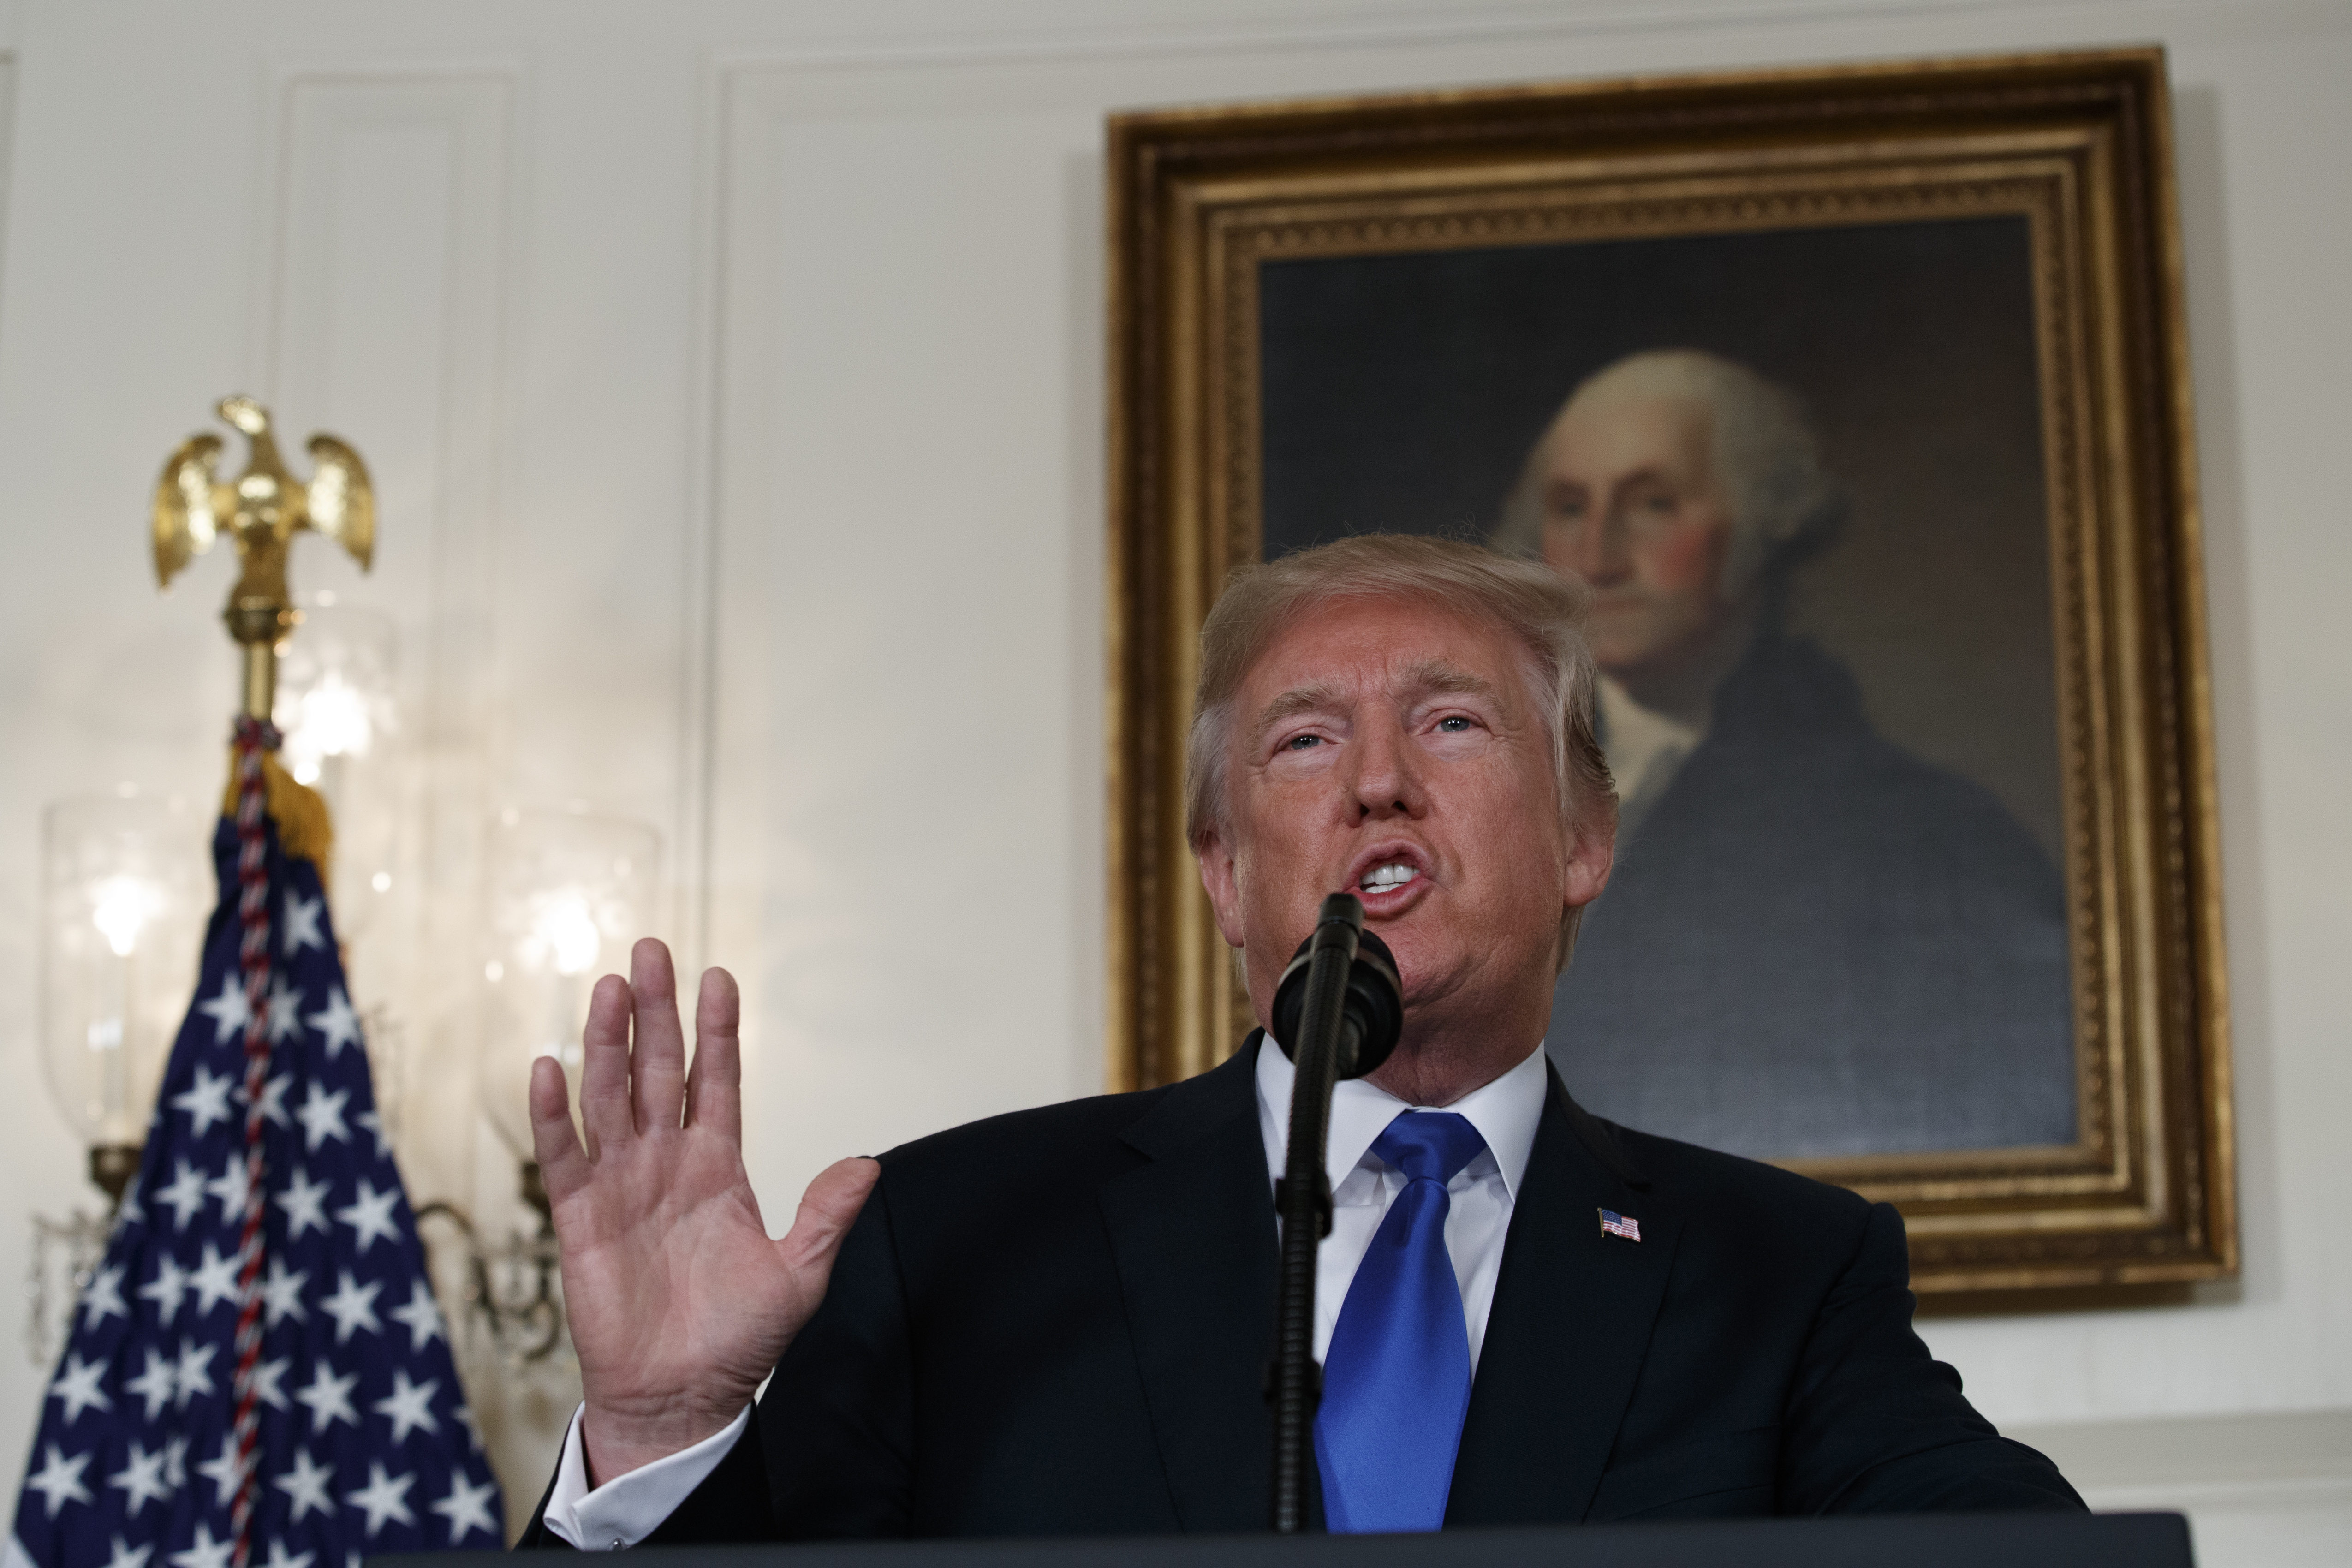 President Donald Trump makes a statement on Iran policy in the Diplomatic Reception Room of the White House, in Washington, Oct. 13, 2017.